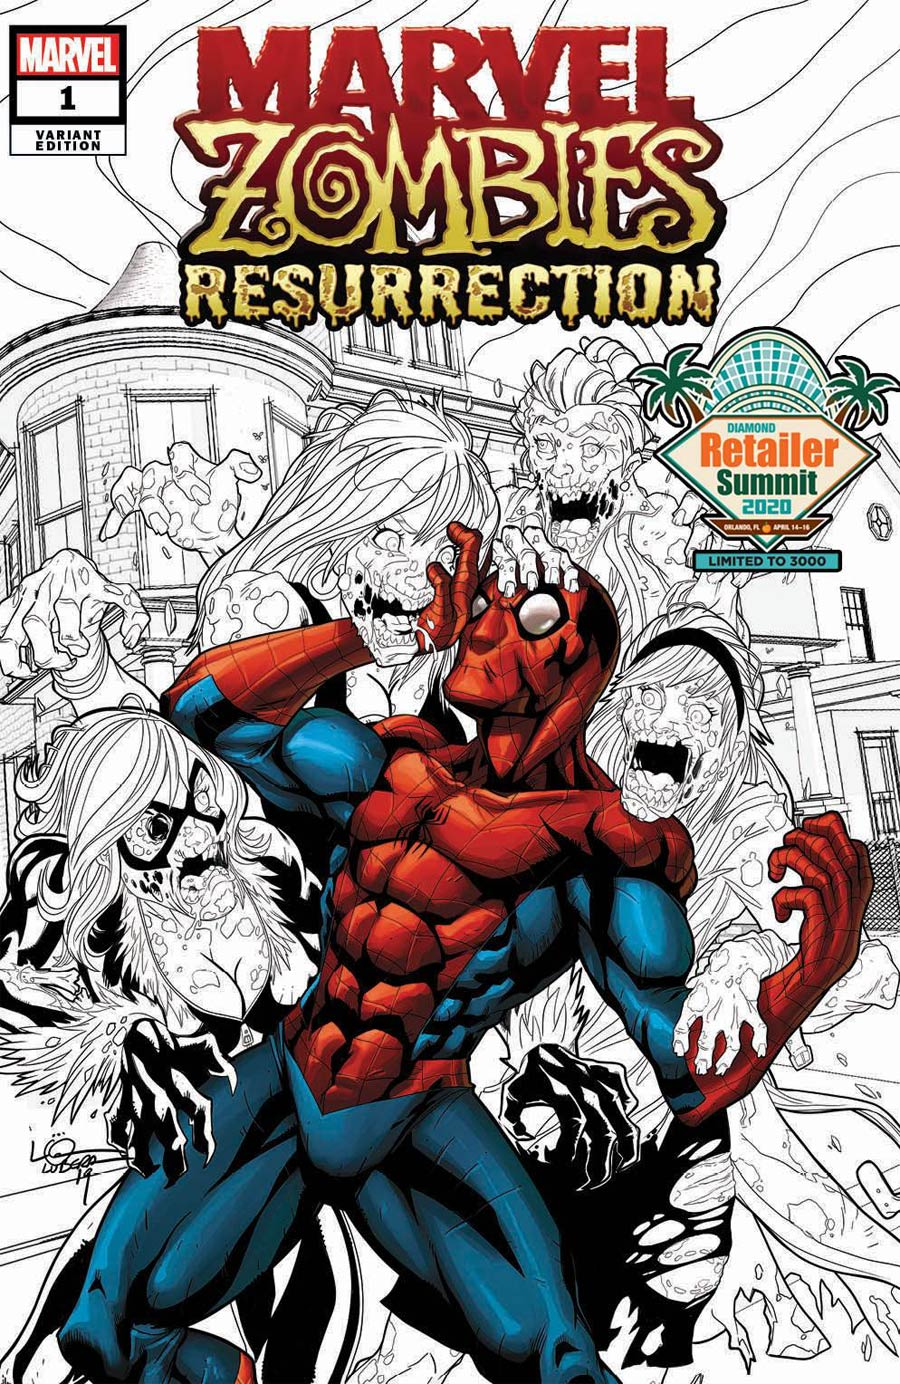 Marvel Zombies Resurrection #1 Cover H Retailer Summit 2020 Logan Lubera Variant Cover